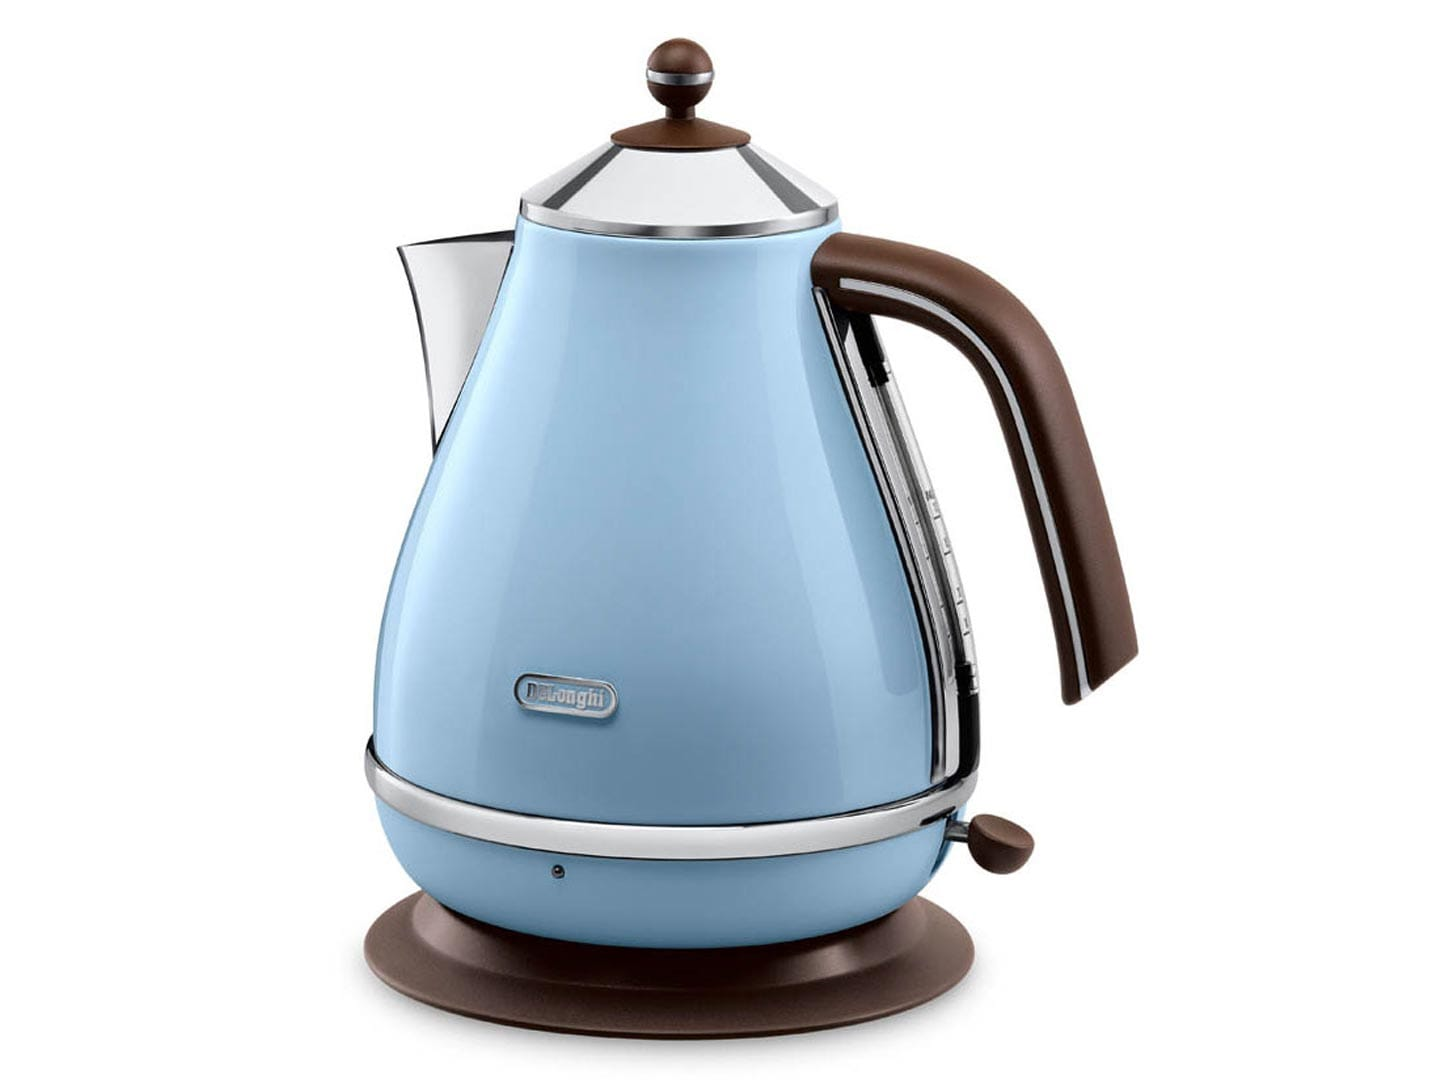 DeLonghi KBOV 2001 GR electrical kettle different colours